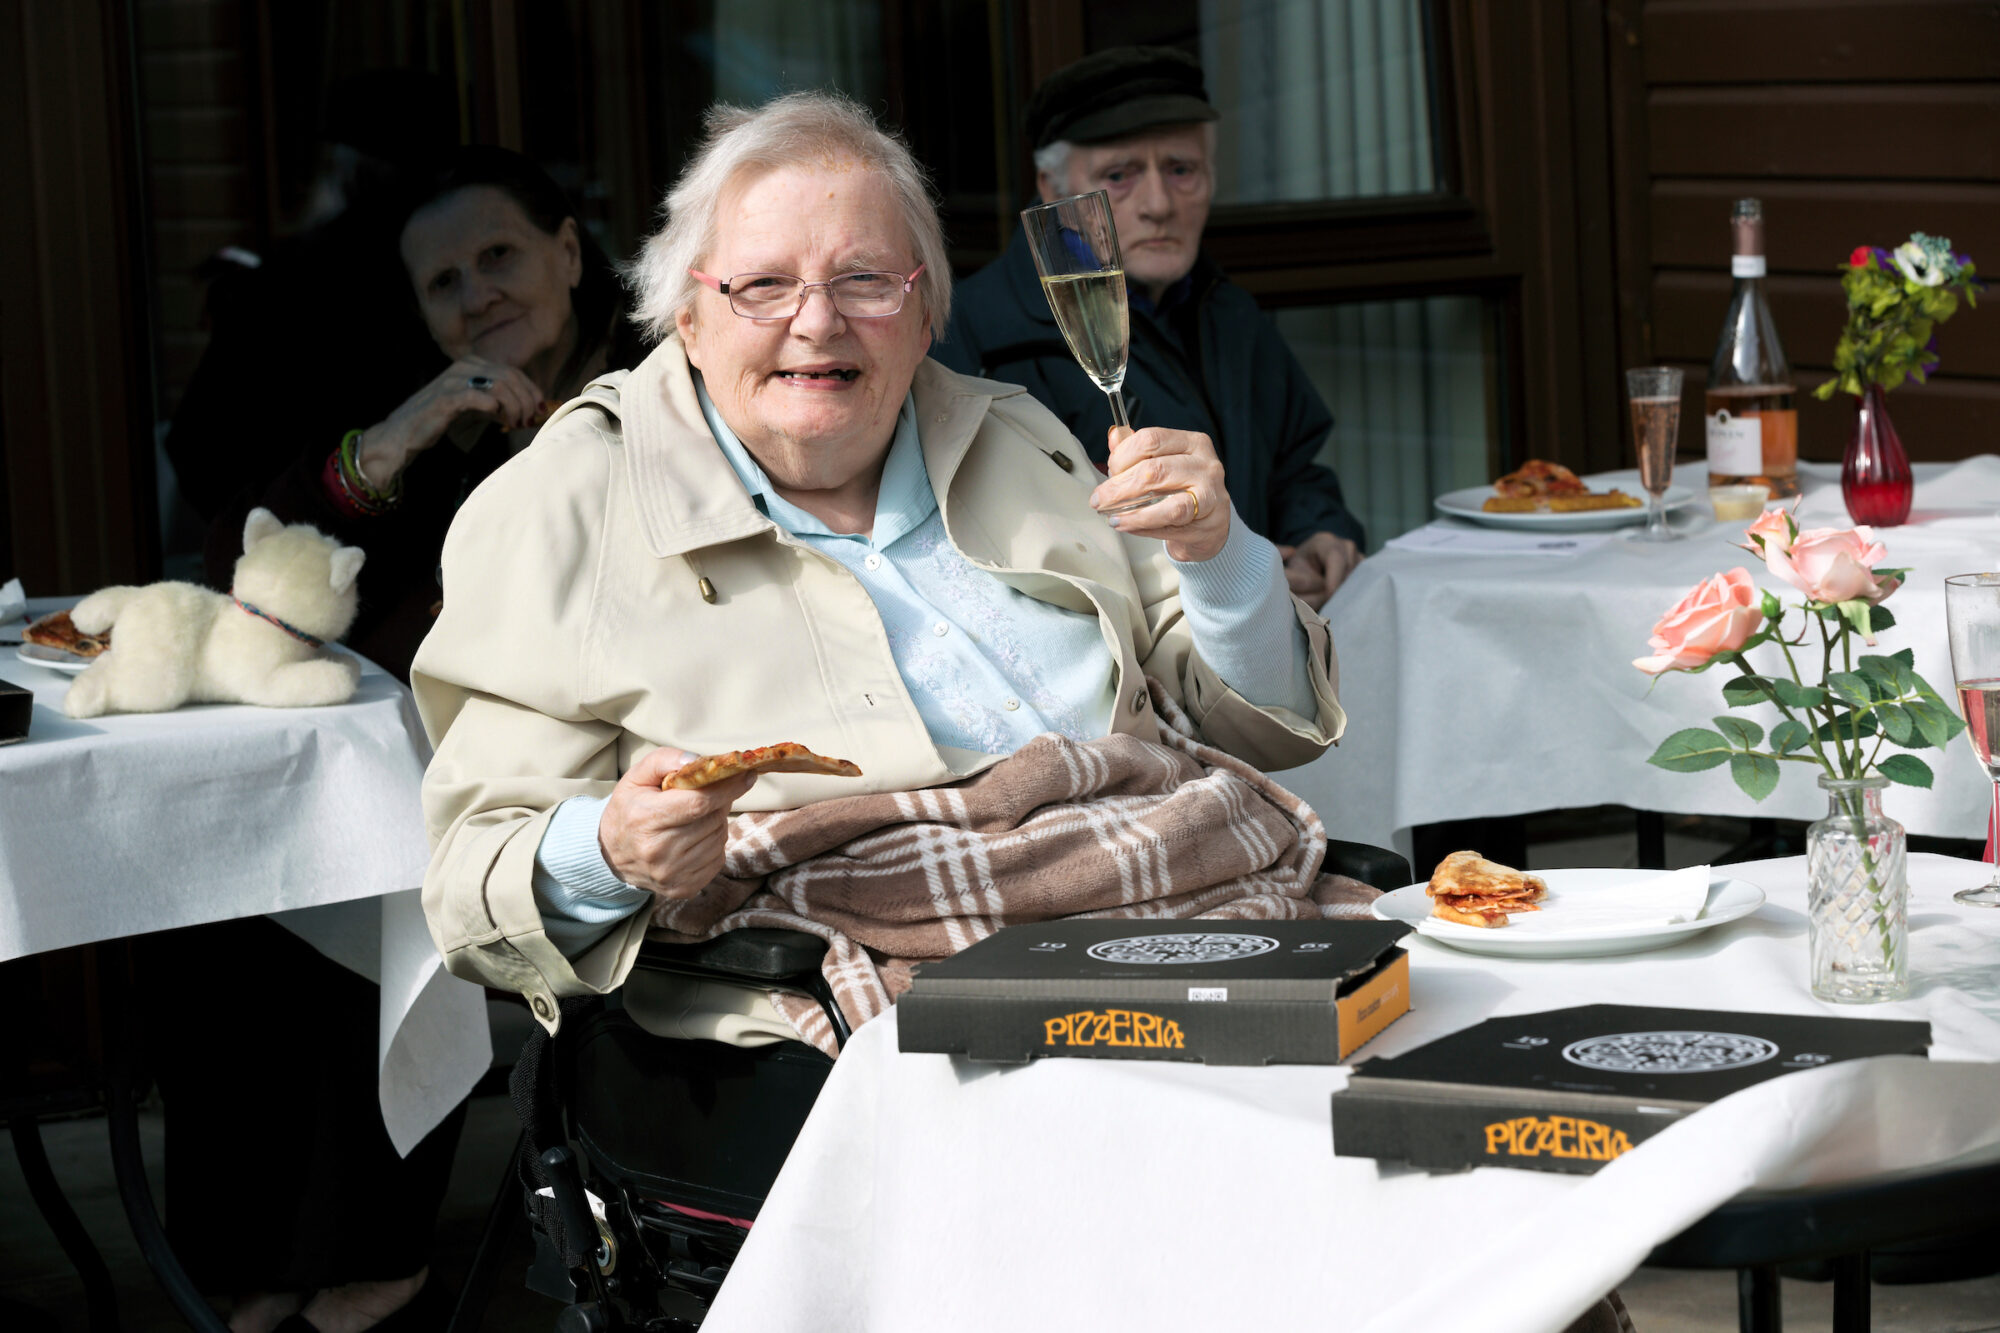 It's smiles all round at Perth care home as lockdown eases and hospitality opens up